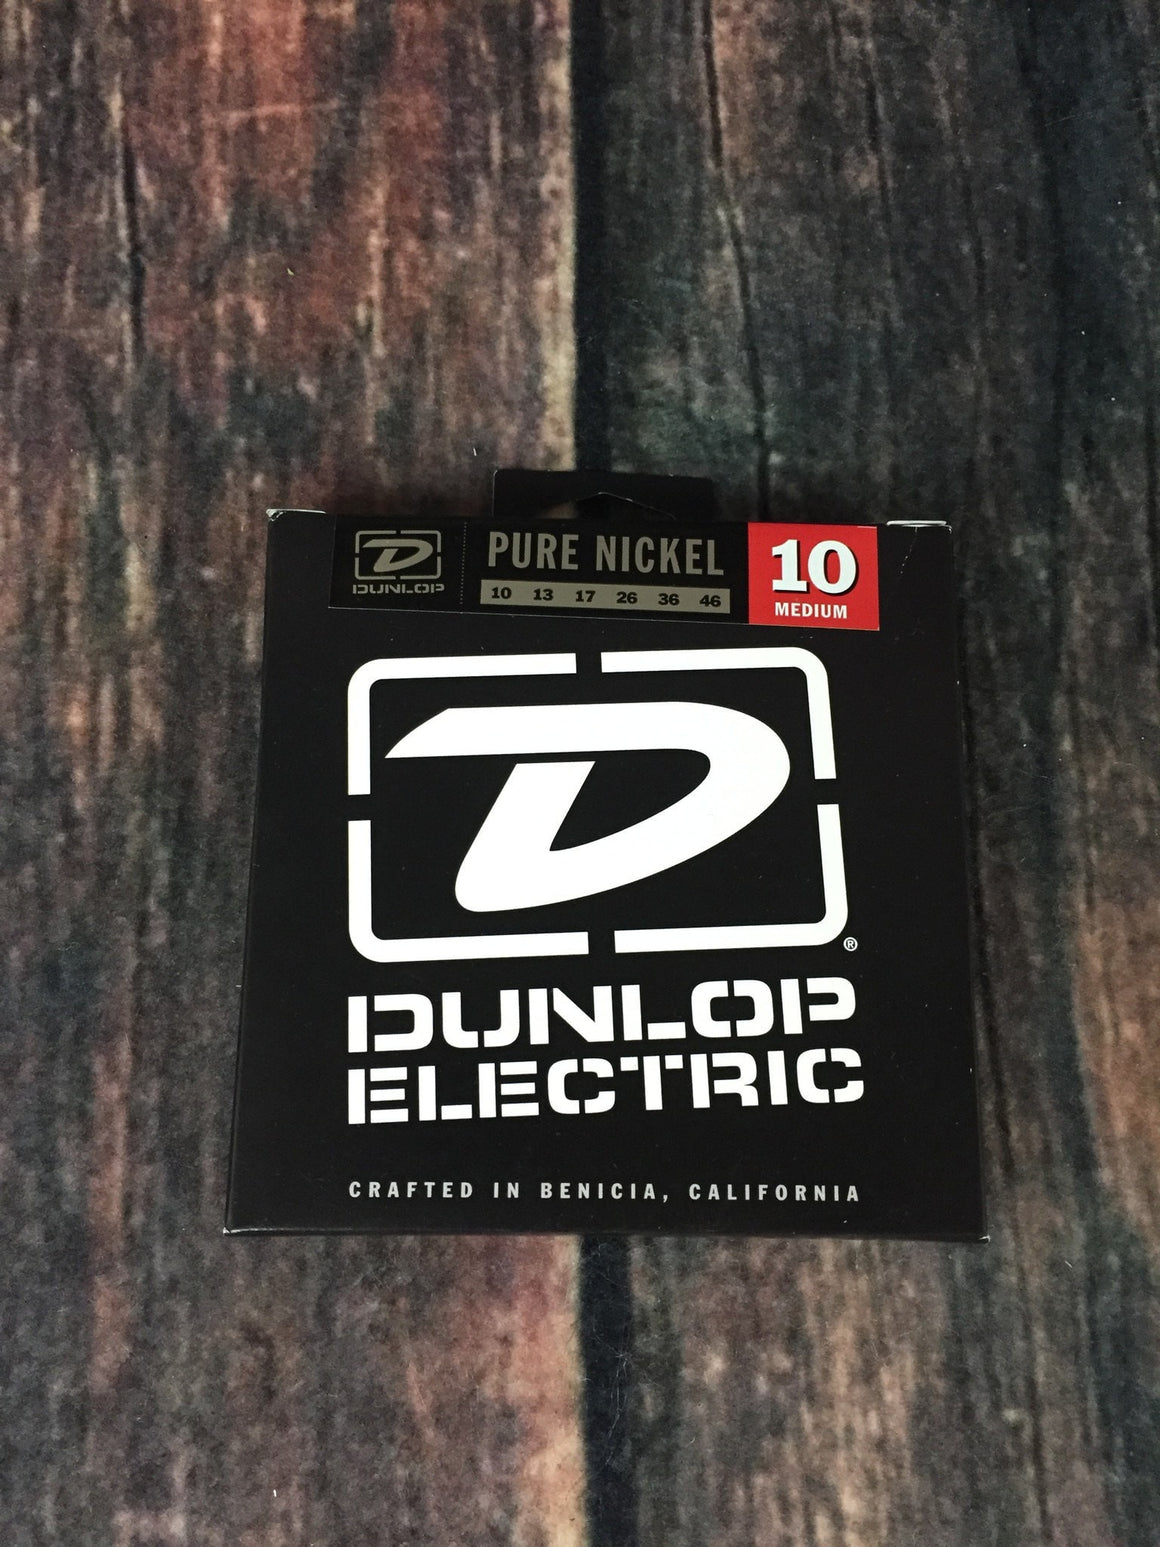 Dunlop Electric Guitar Strings Dunlop Pure NIckel .10 gauge DEK1046 Medium Electric Guitar Strings